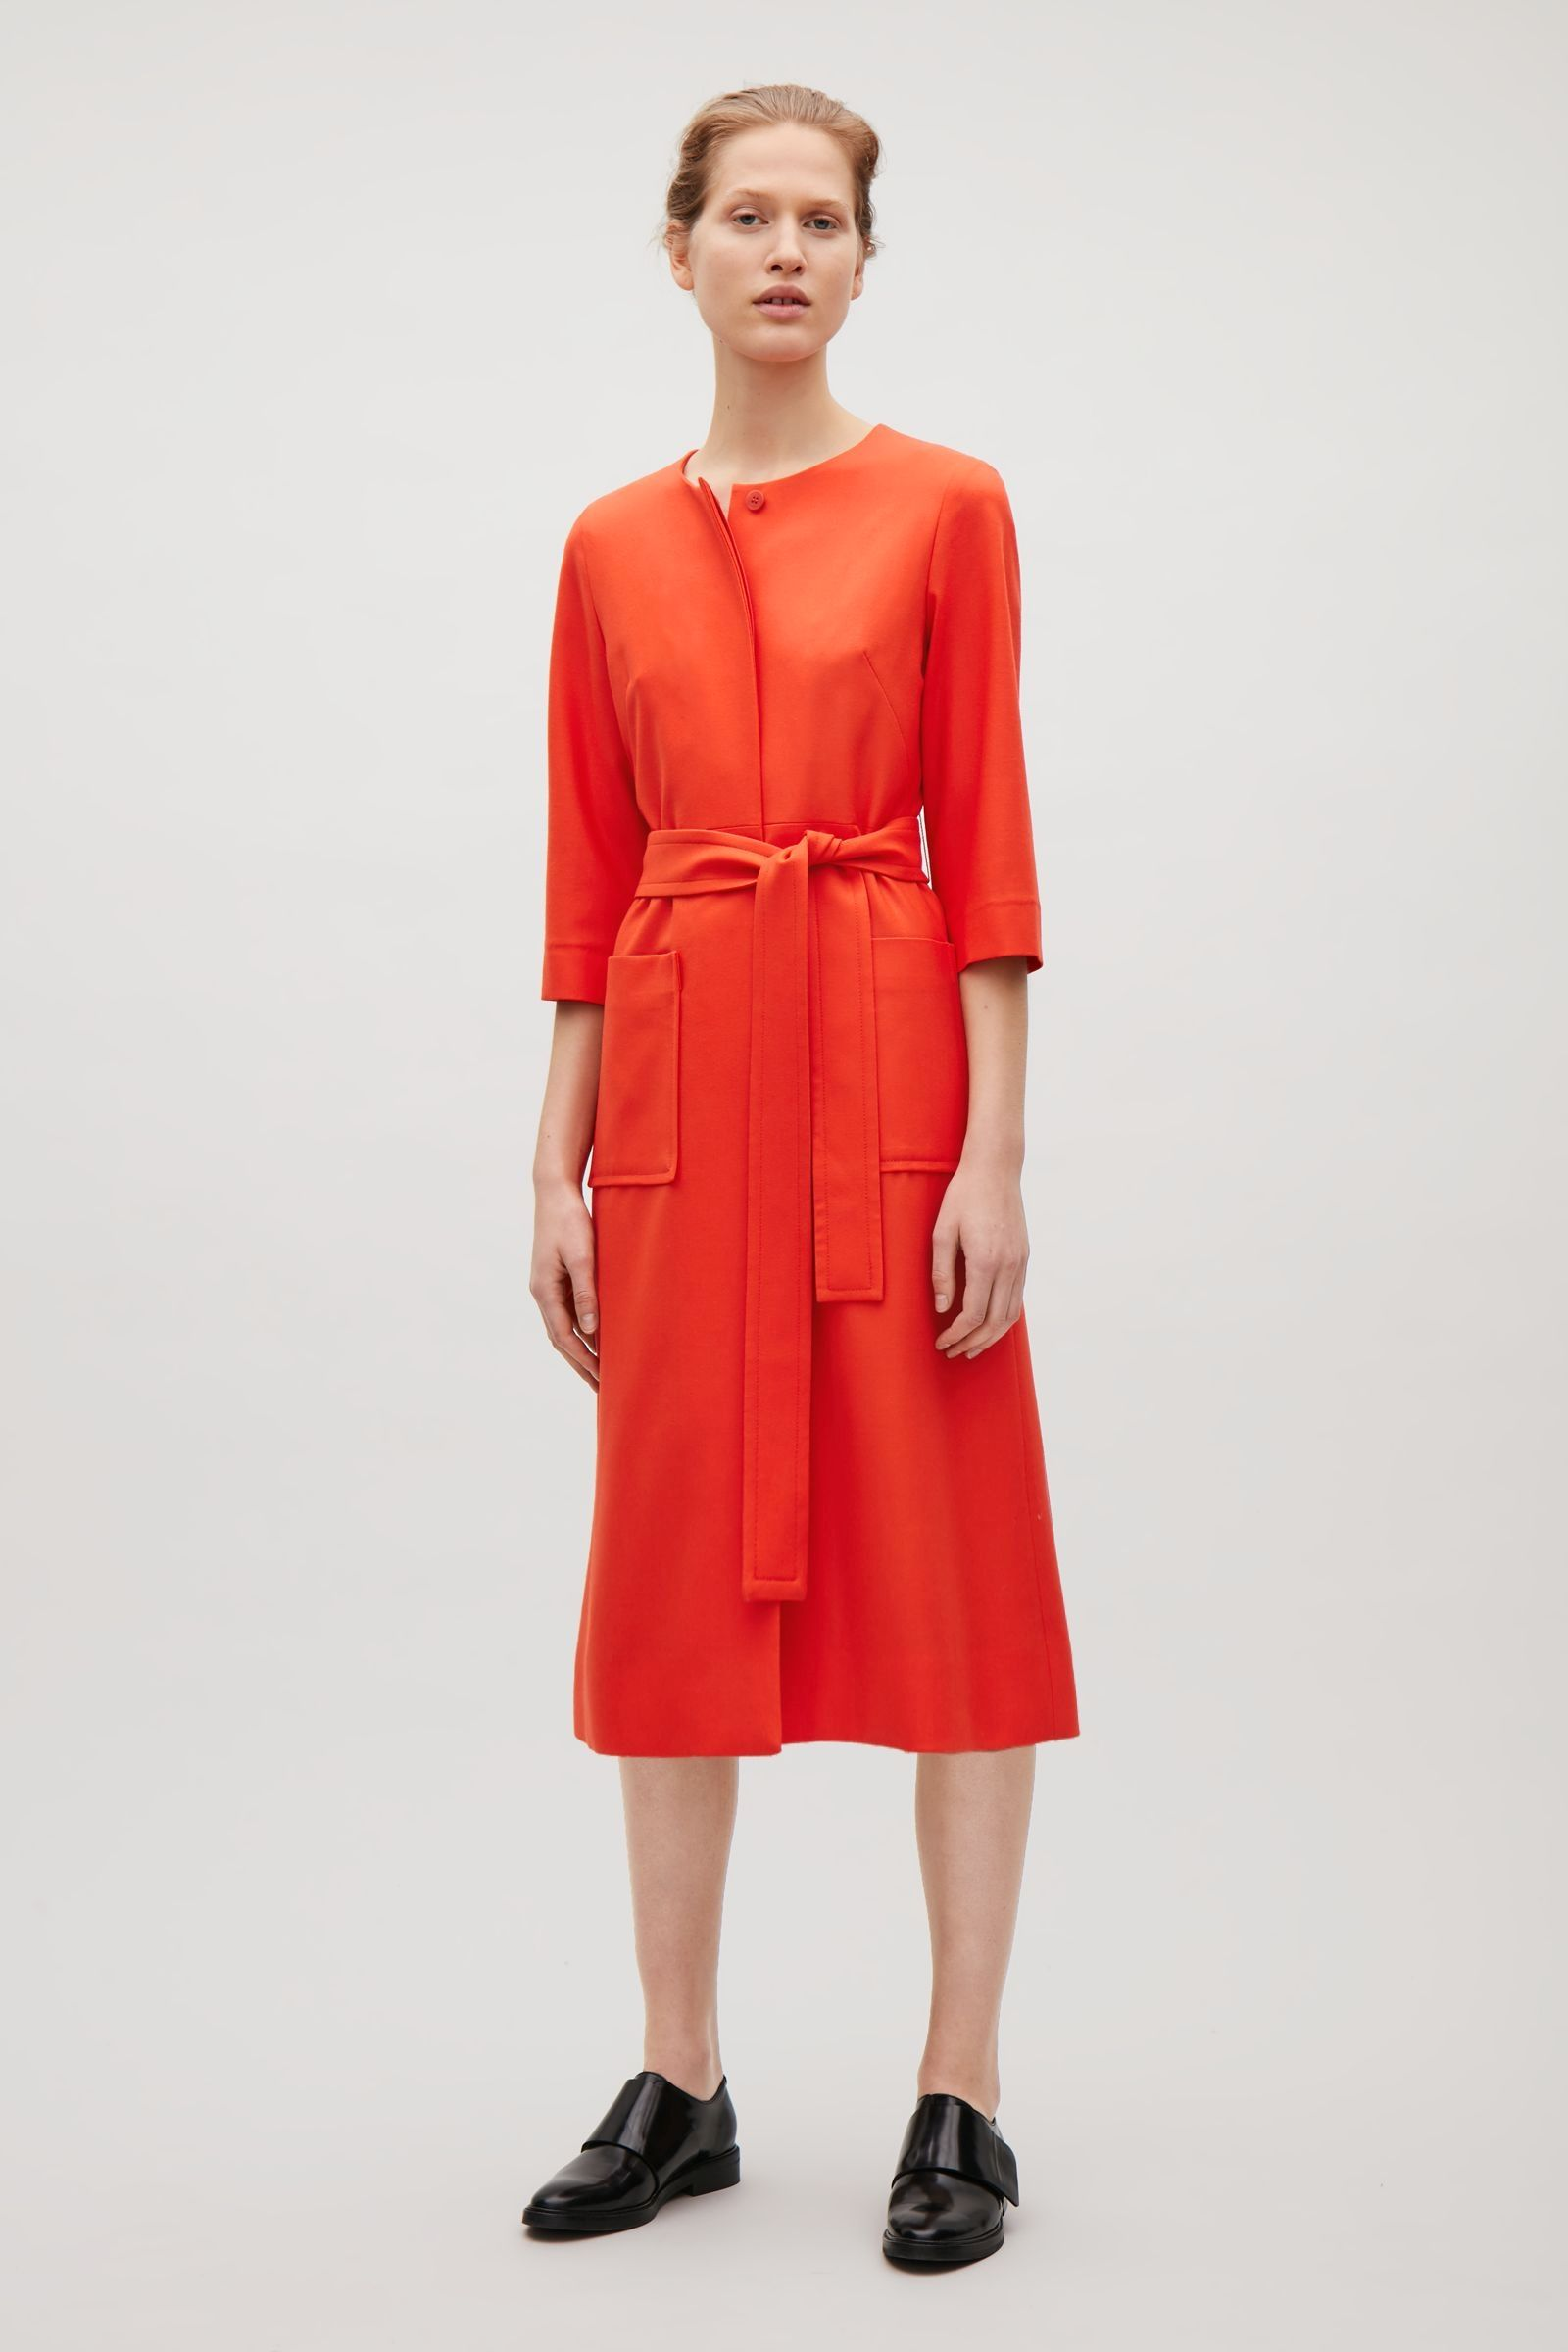 dbb512b2916e COS image of Belted wool dress in Poppy